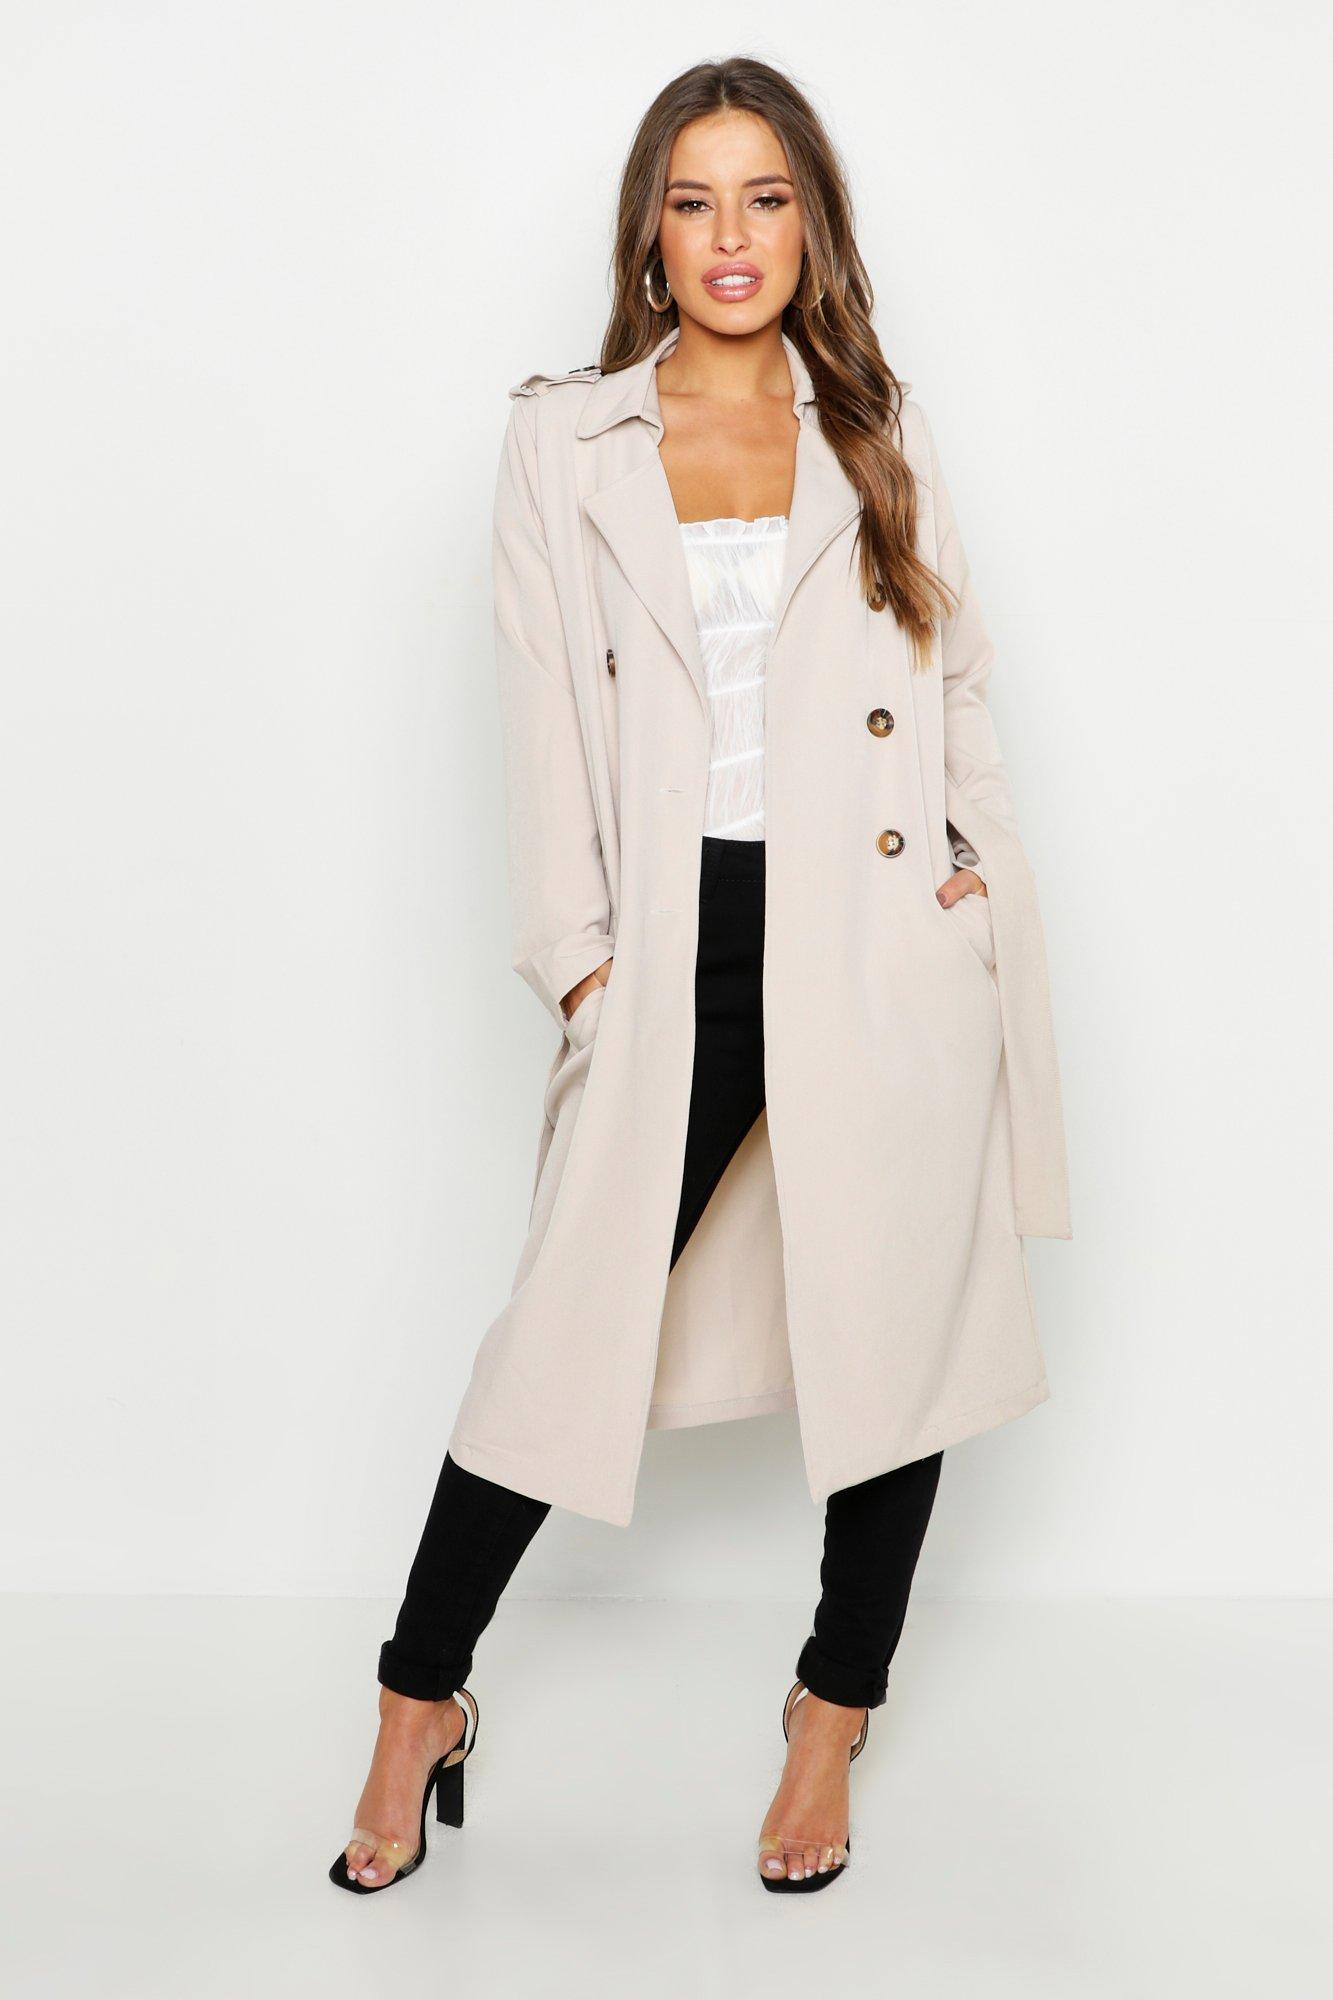 boohoo Womens Petite Utility Button Detail Trench Coat - Beige - 8, Beige